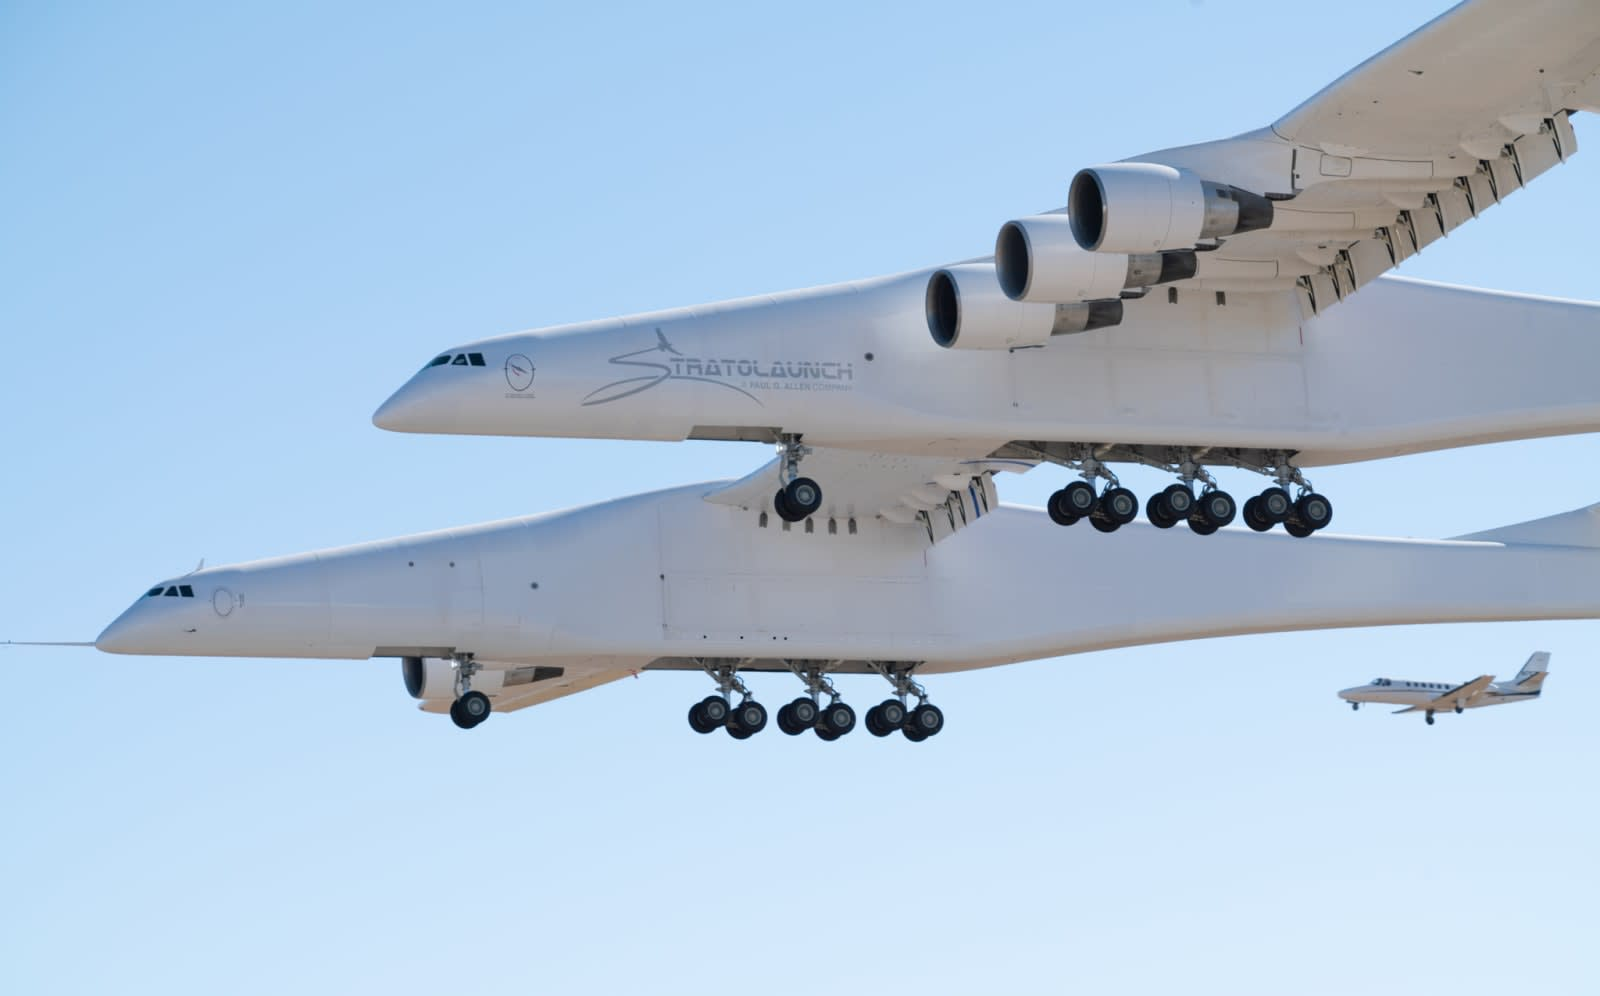 Paul Allen's Stratolaunch is reportedly shutting down